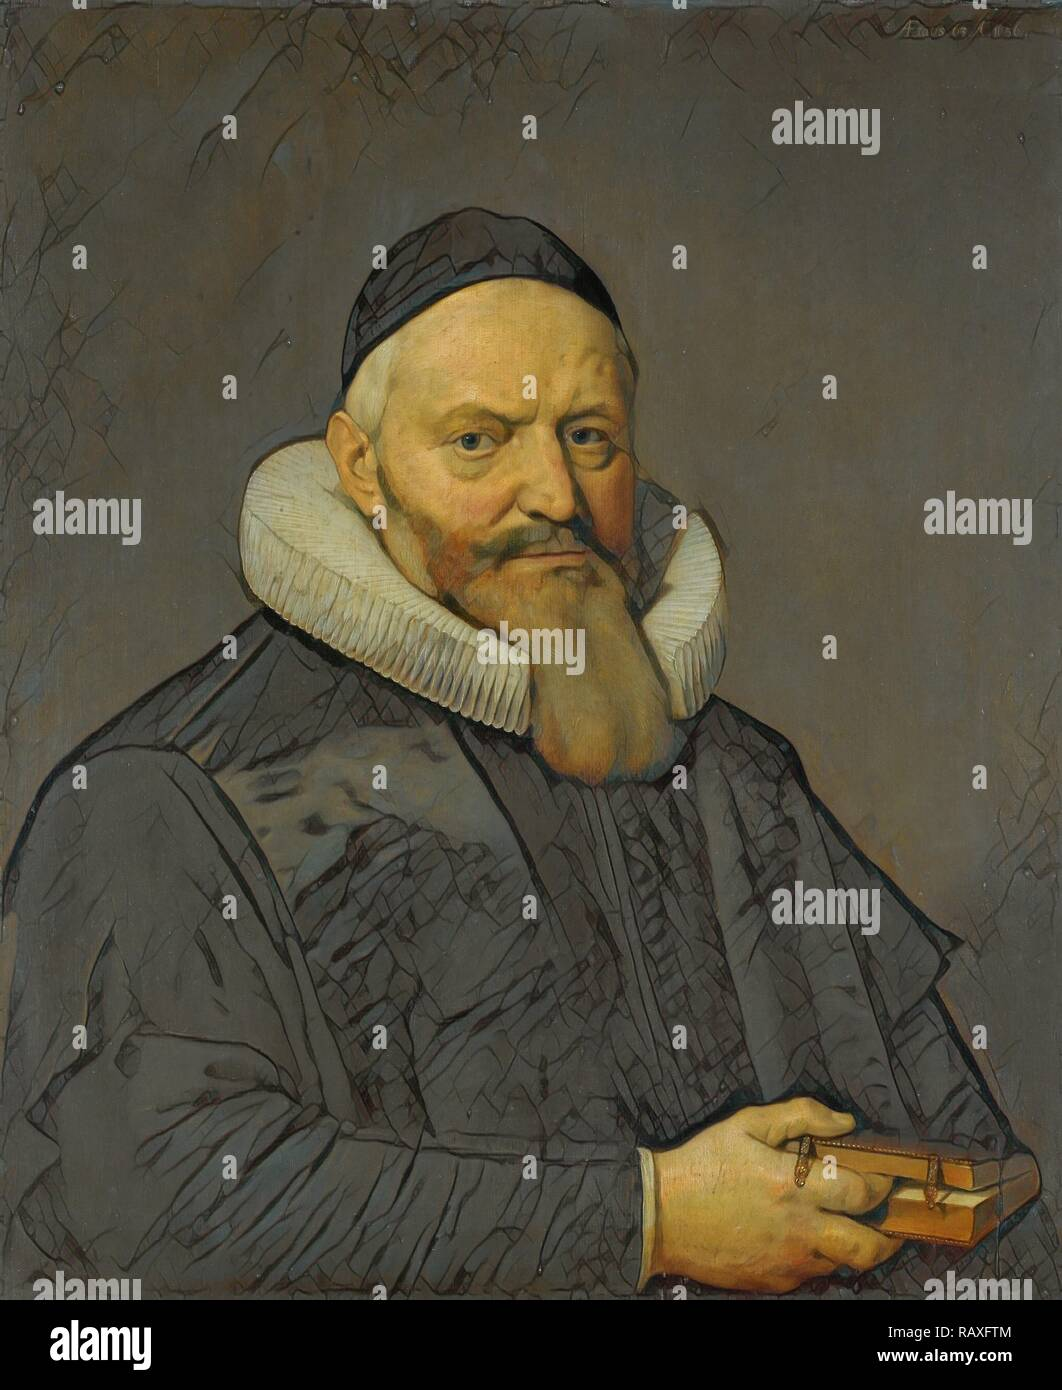 Portrait of Anthony de Wale, Professor of Theology in Leiden, The Netherlands, David Bailly, 1636. Reimagined - Stock Image